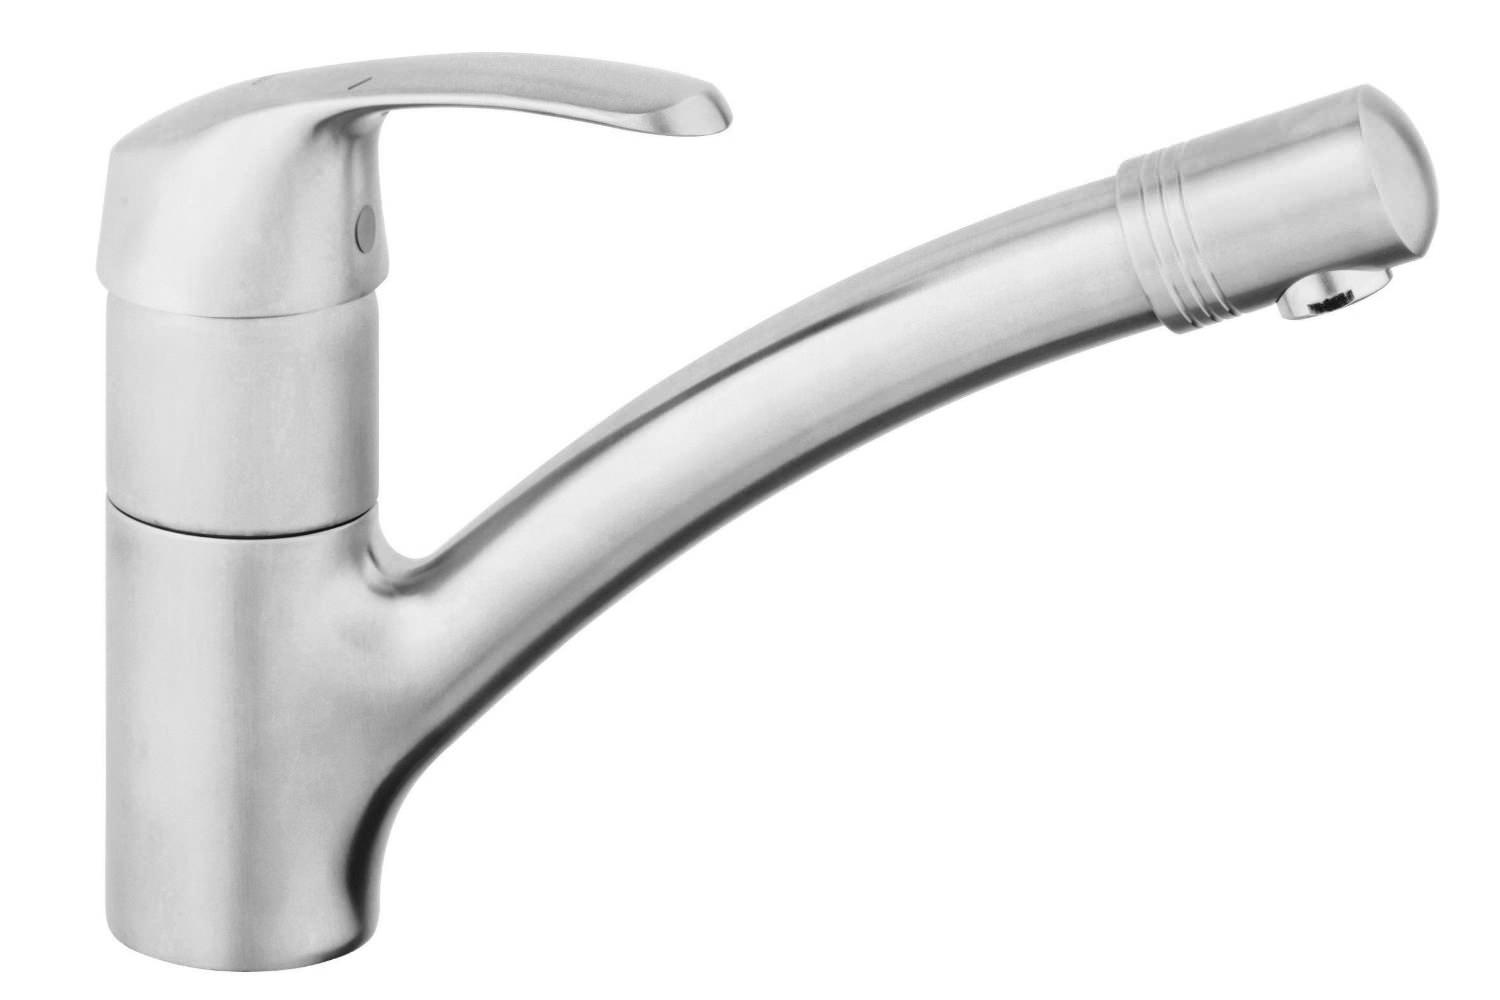 grohe kitchen sink taps grohe alira stainless steel sink mixer tap 32997sd0 4103